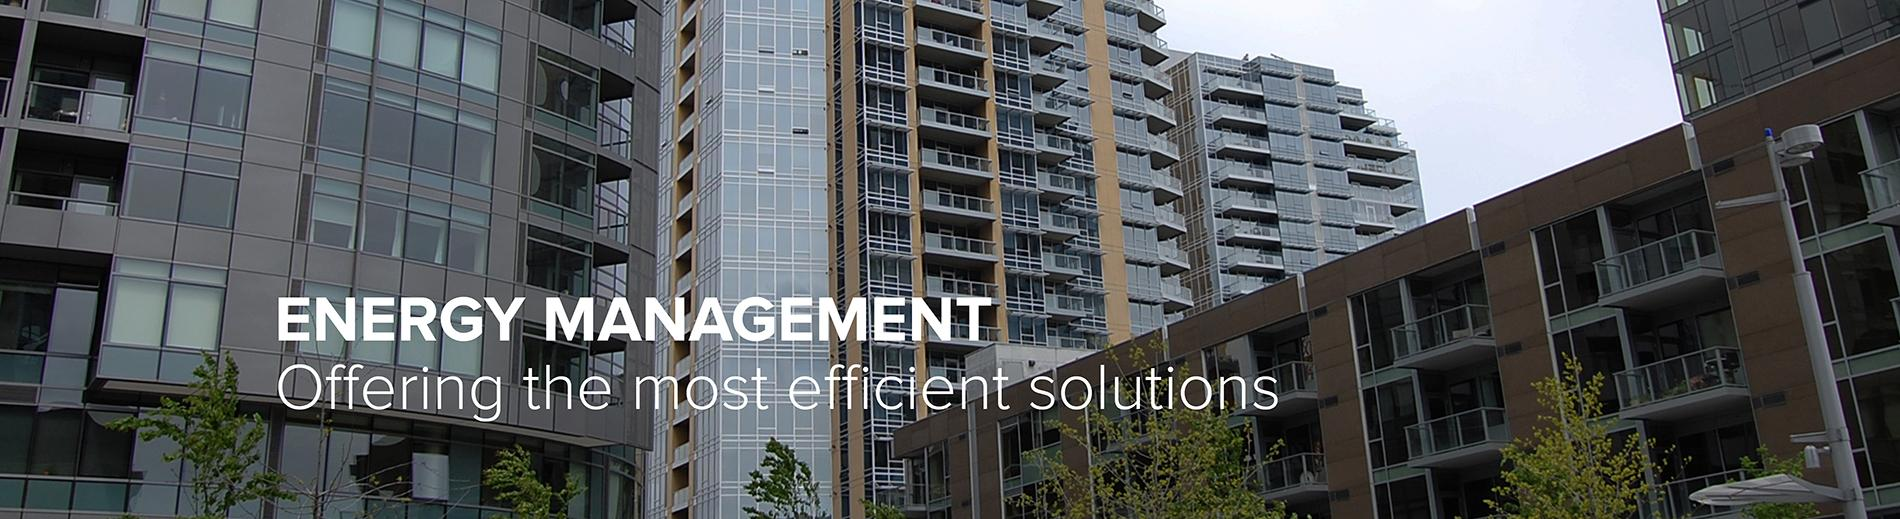 Energy Management - Home